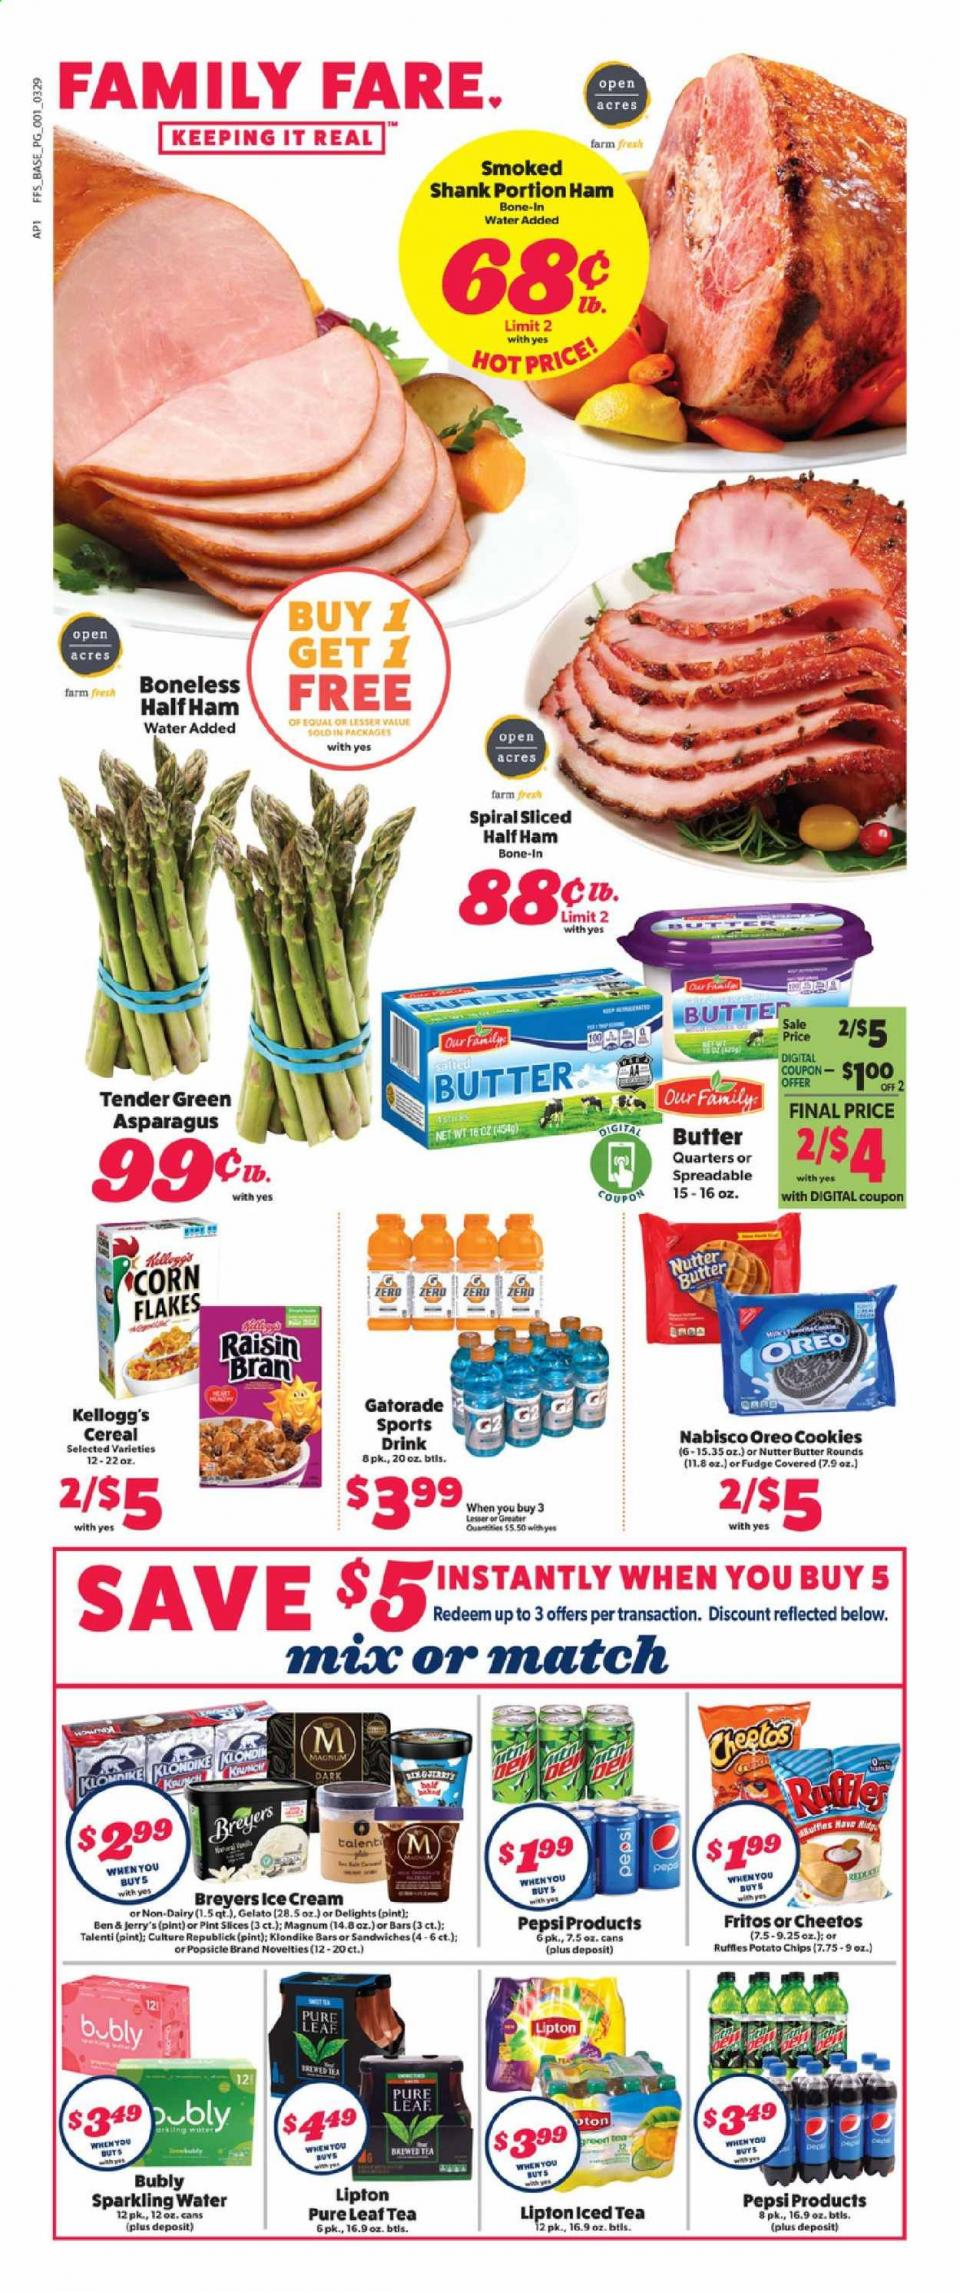 Family Fare April Ad valid from Mar 29 – Apr 4, 2020.